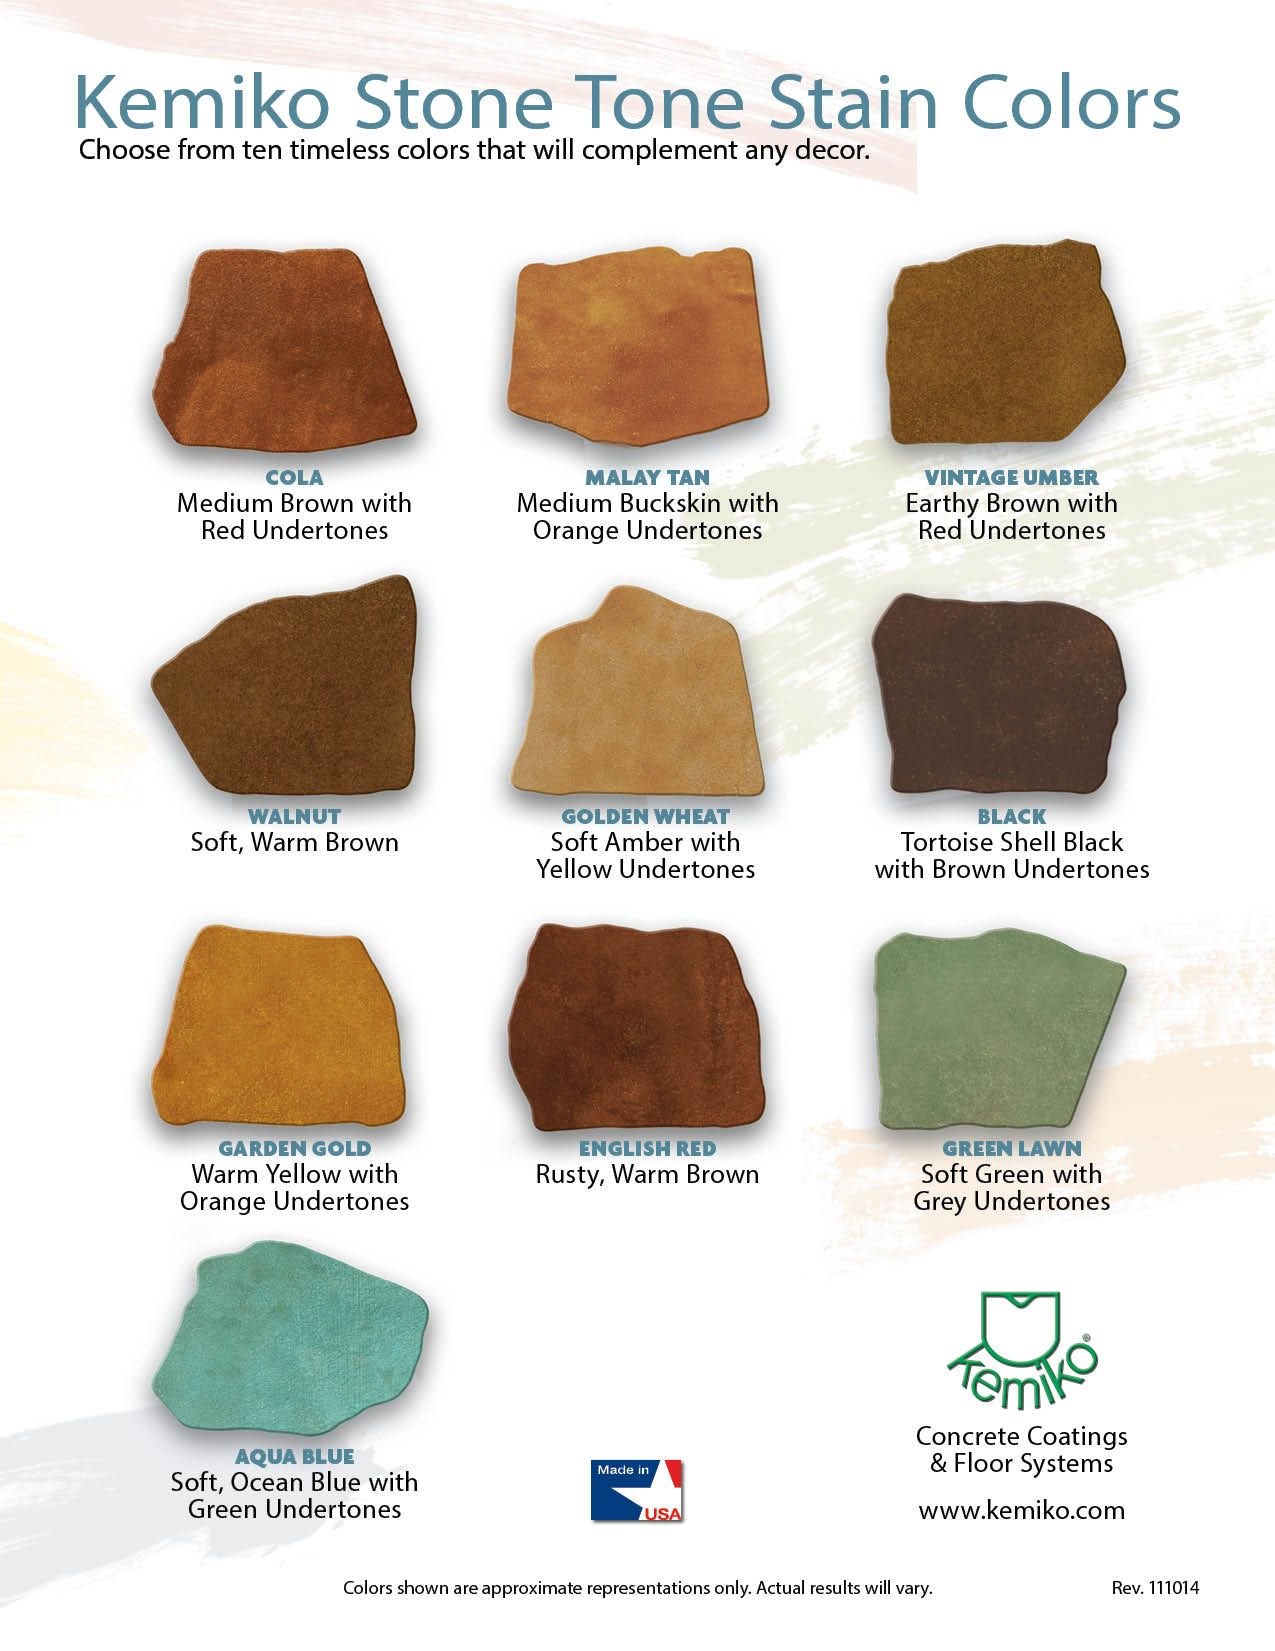 Stone Tone Stain Colors: either Golden Wheat or Vintage Umber